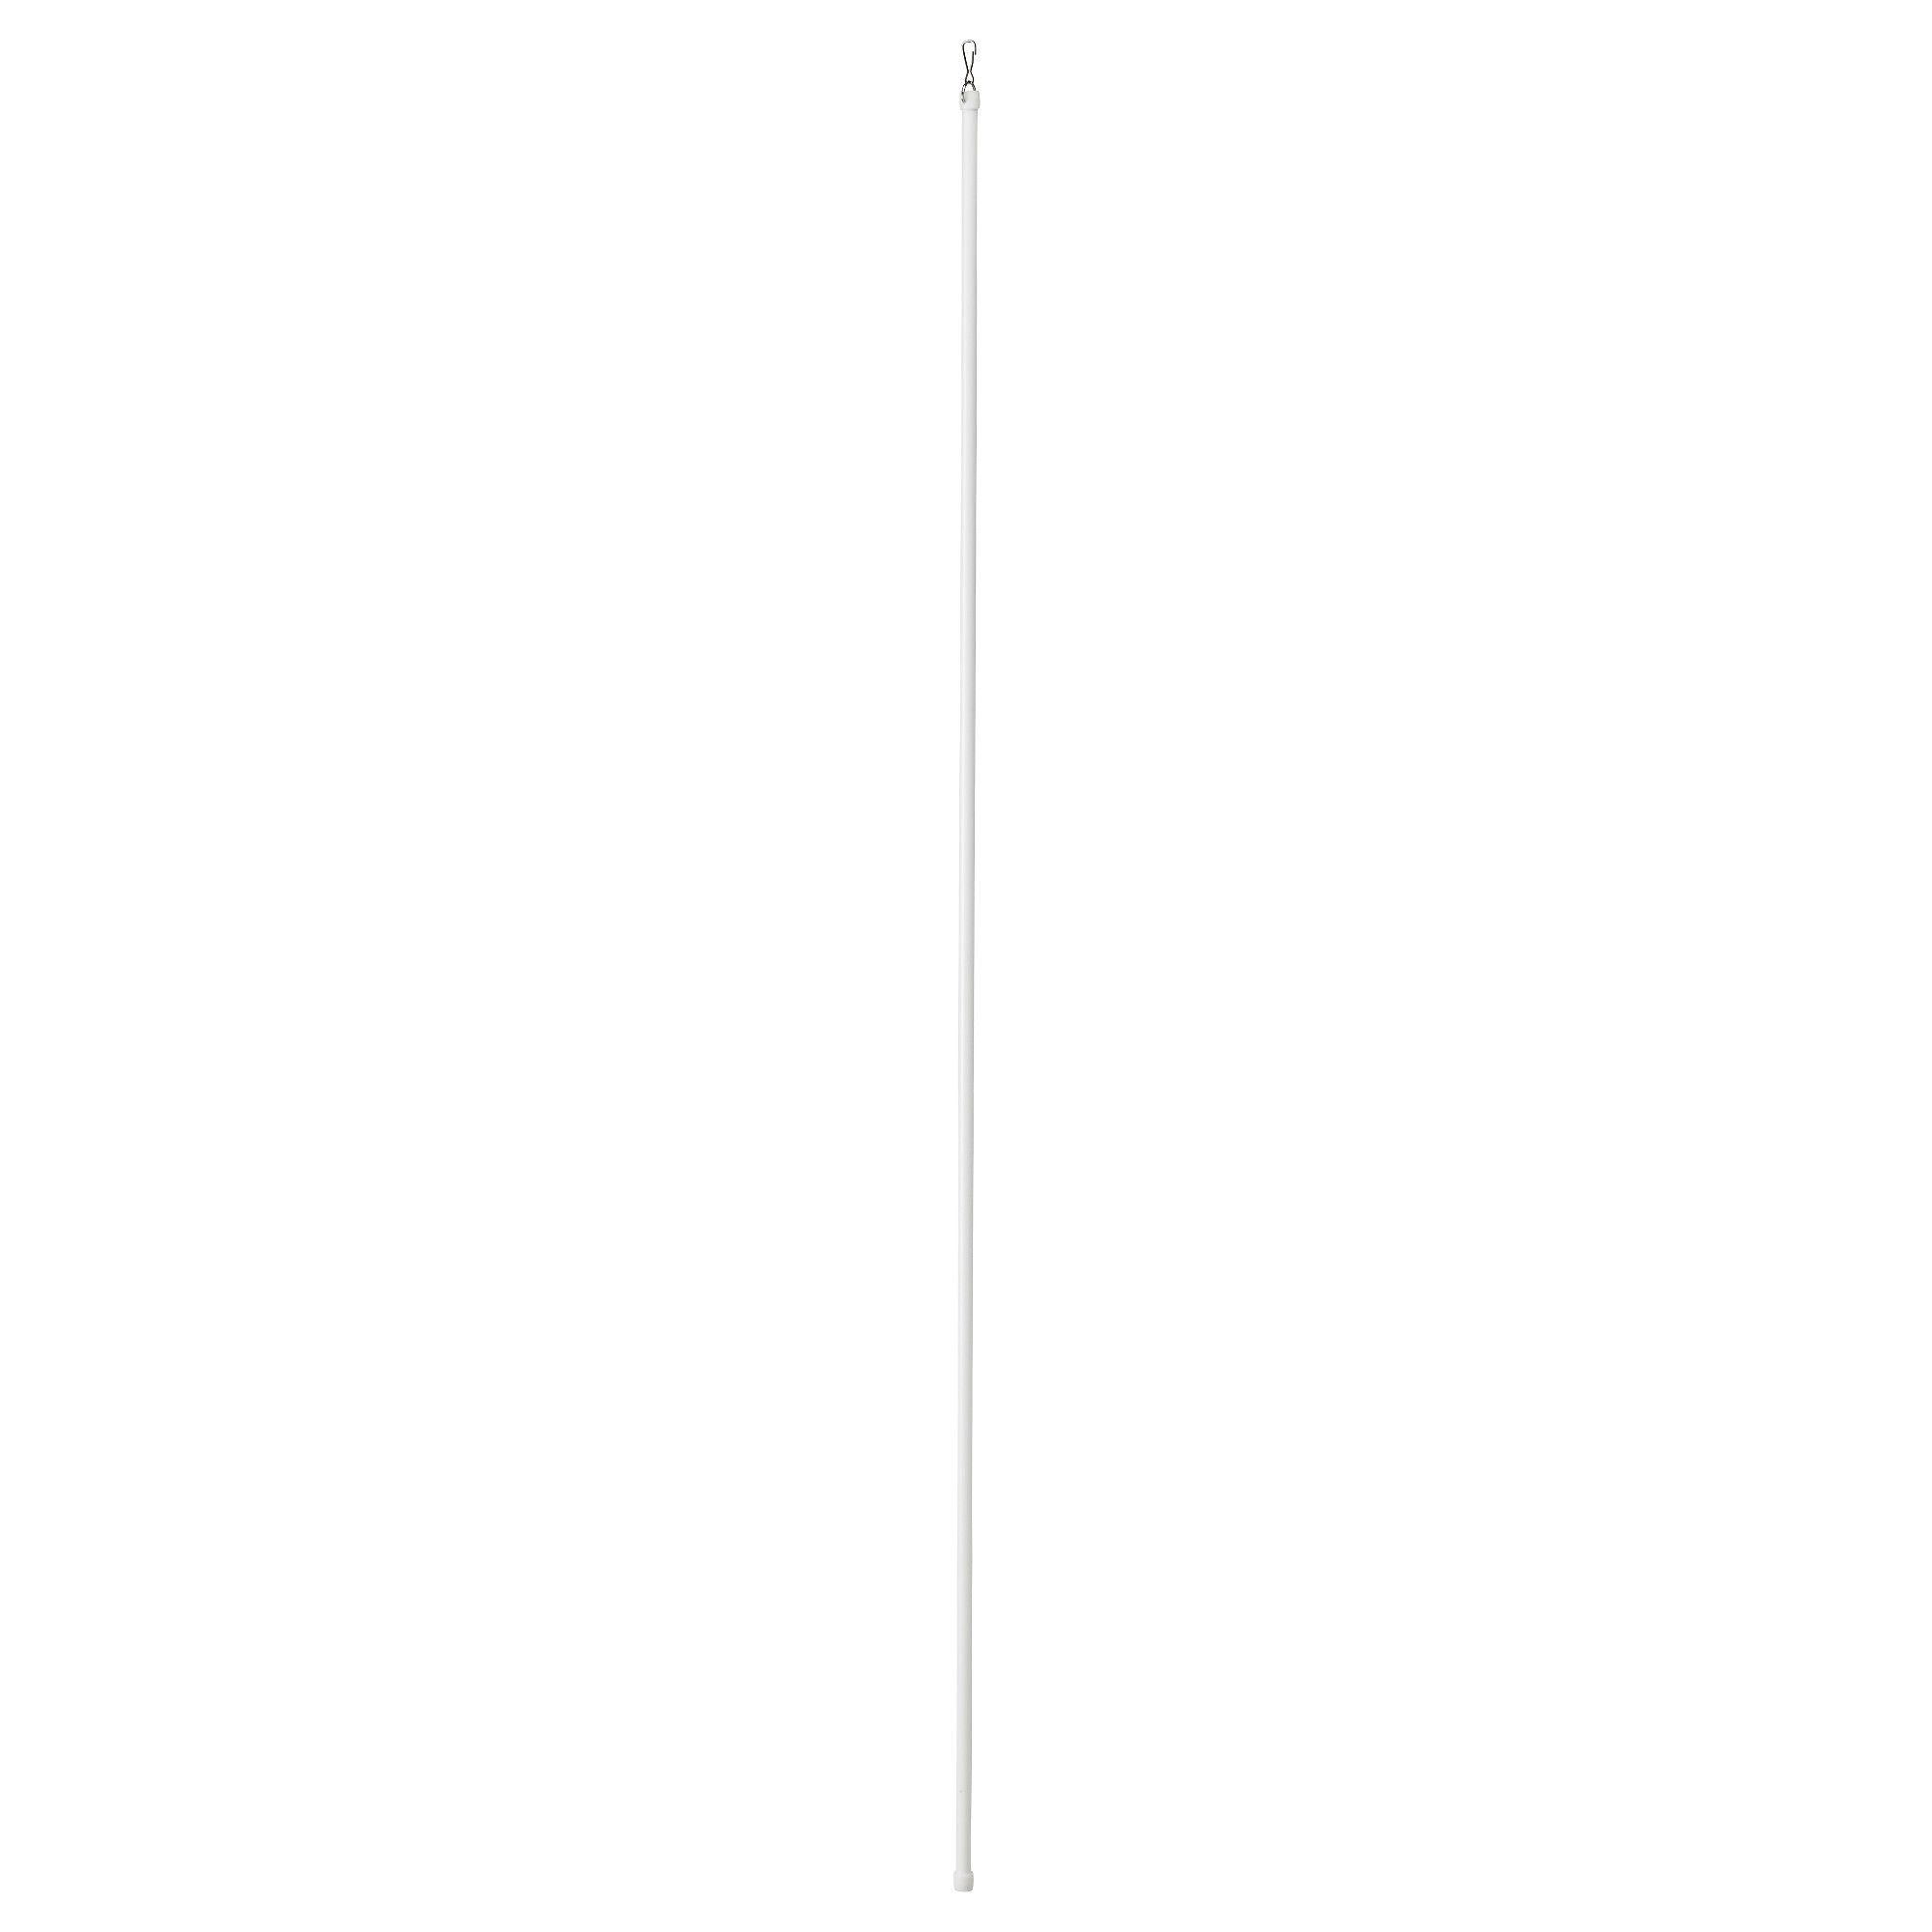 "VIDGA Draw Rod - White 43 ¼ "" (110 Cm)"